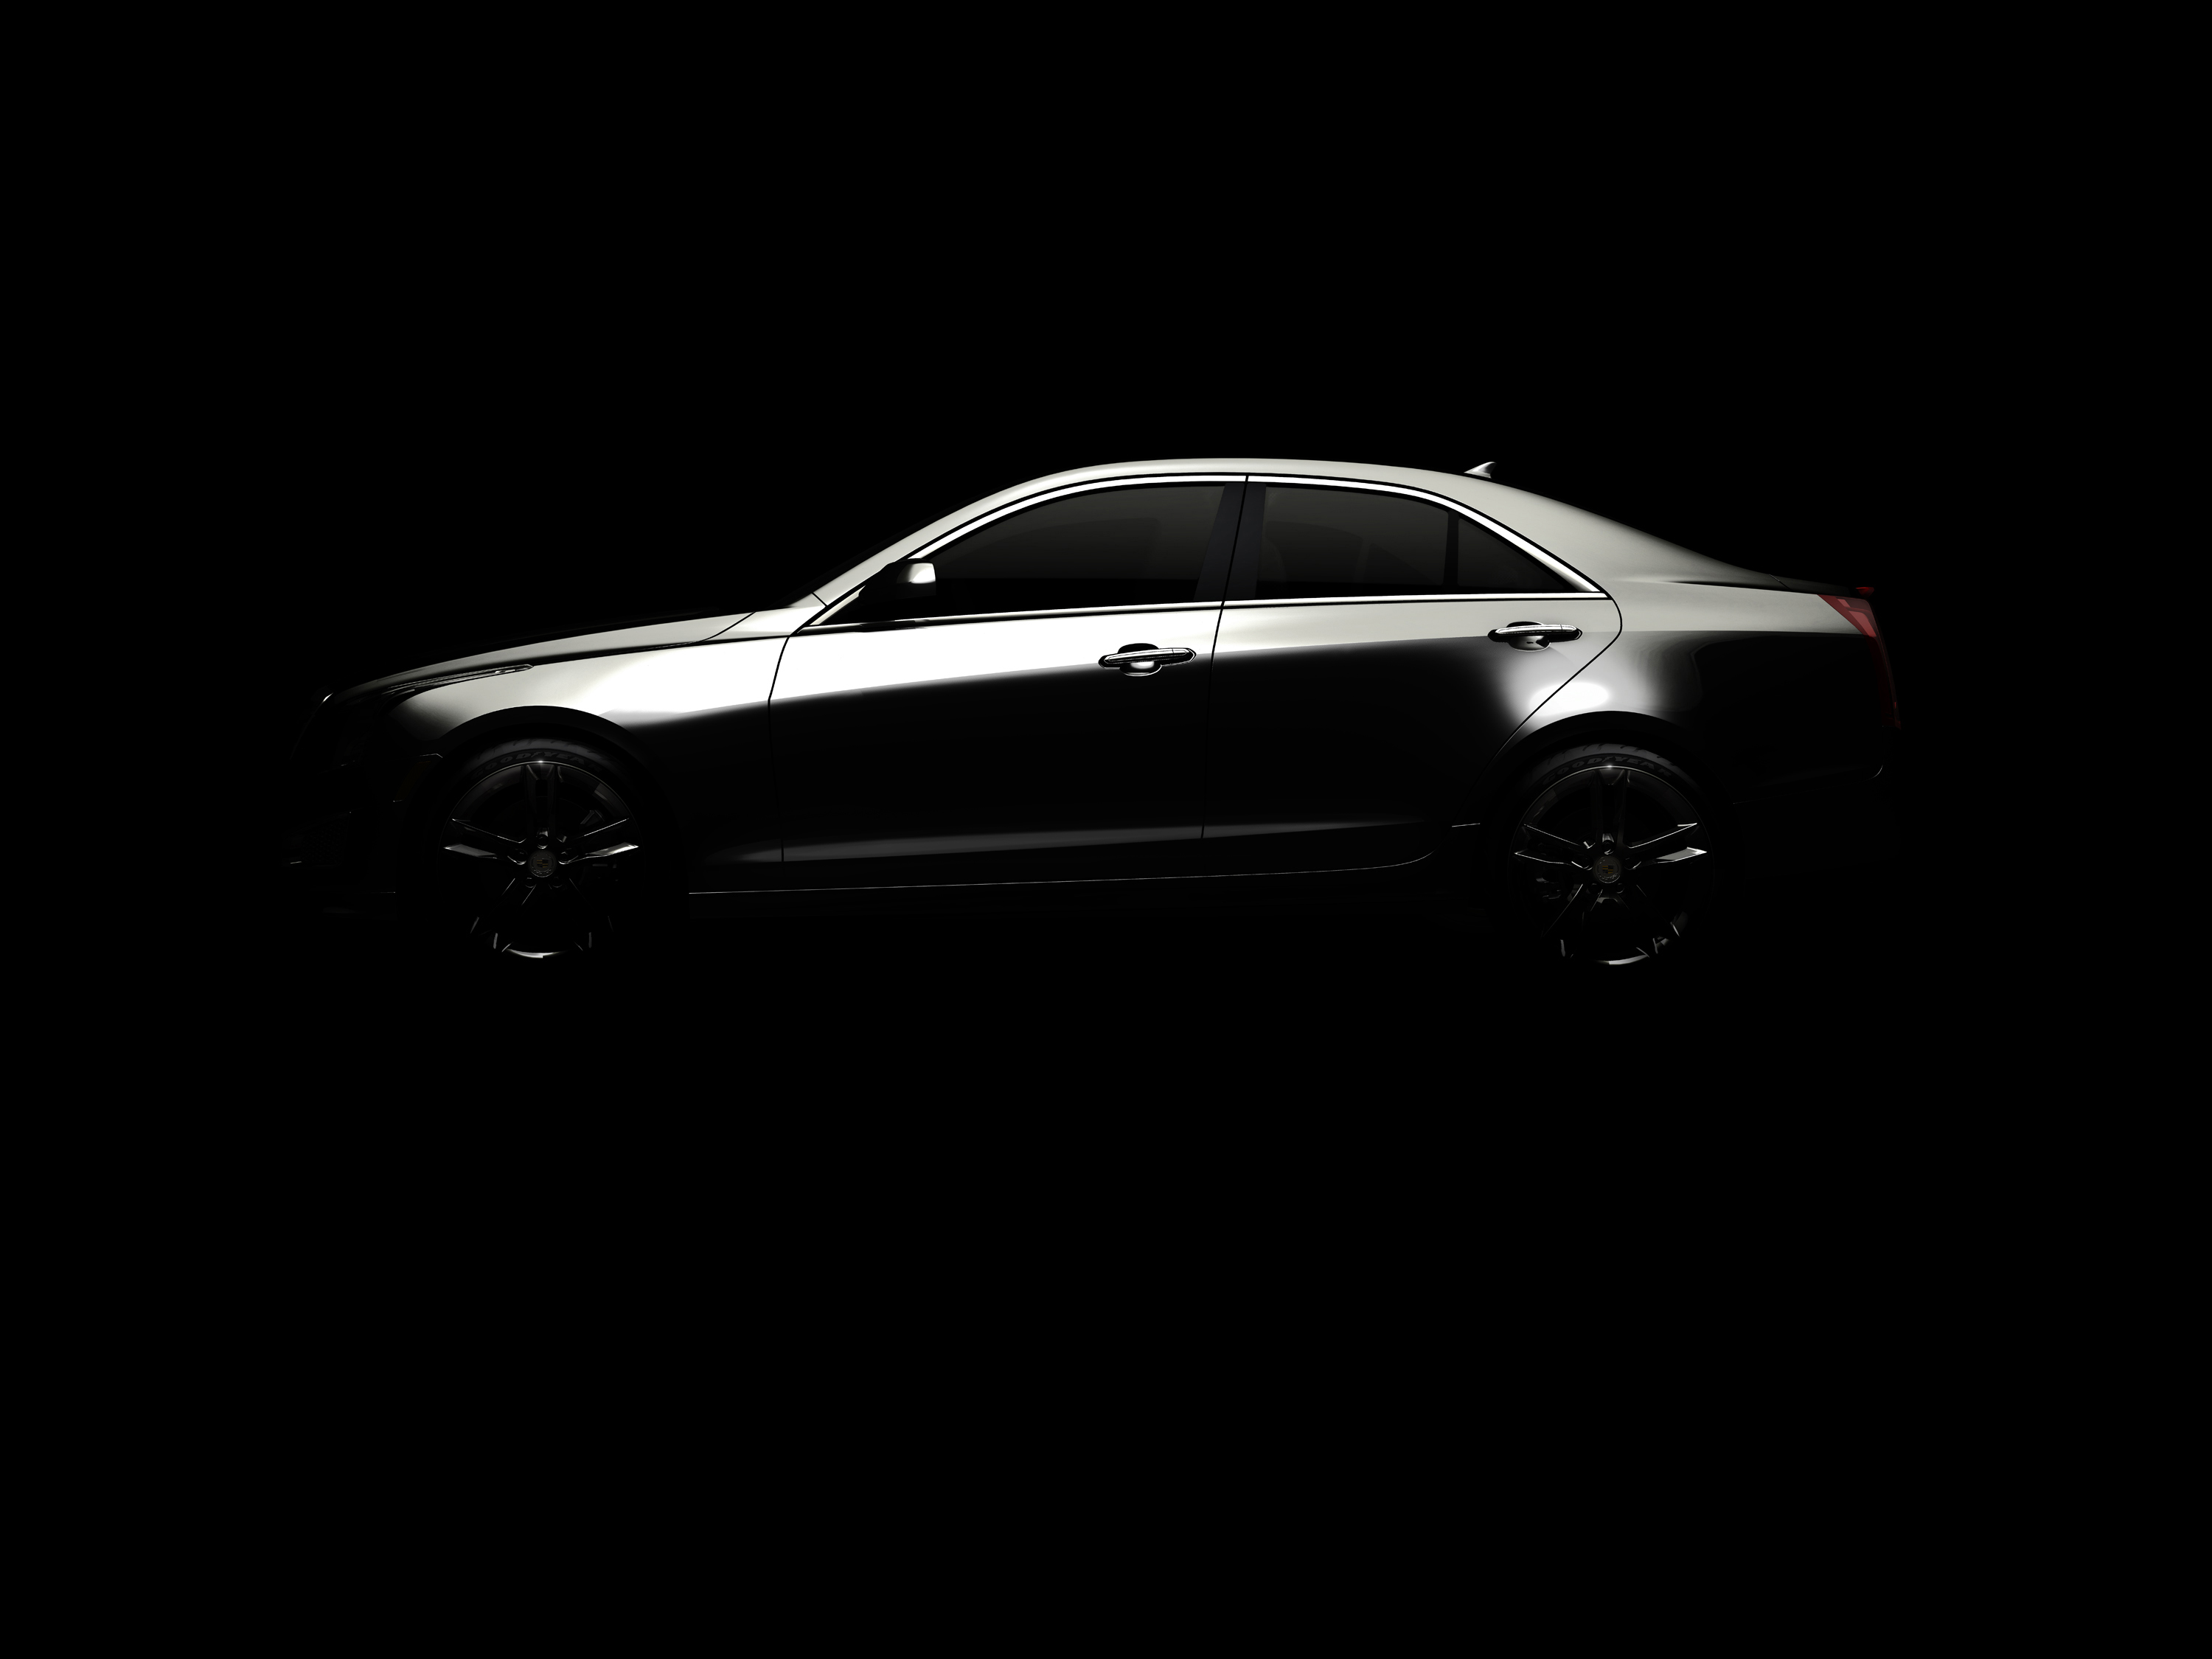 Cadillac to Launch Two New Luxury Cars for 2012